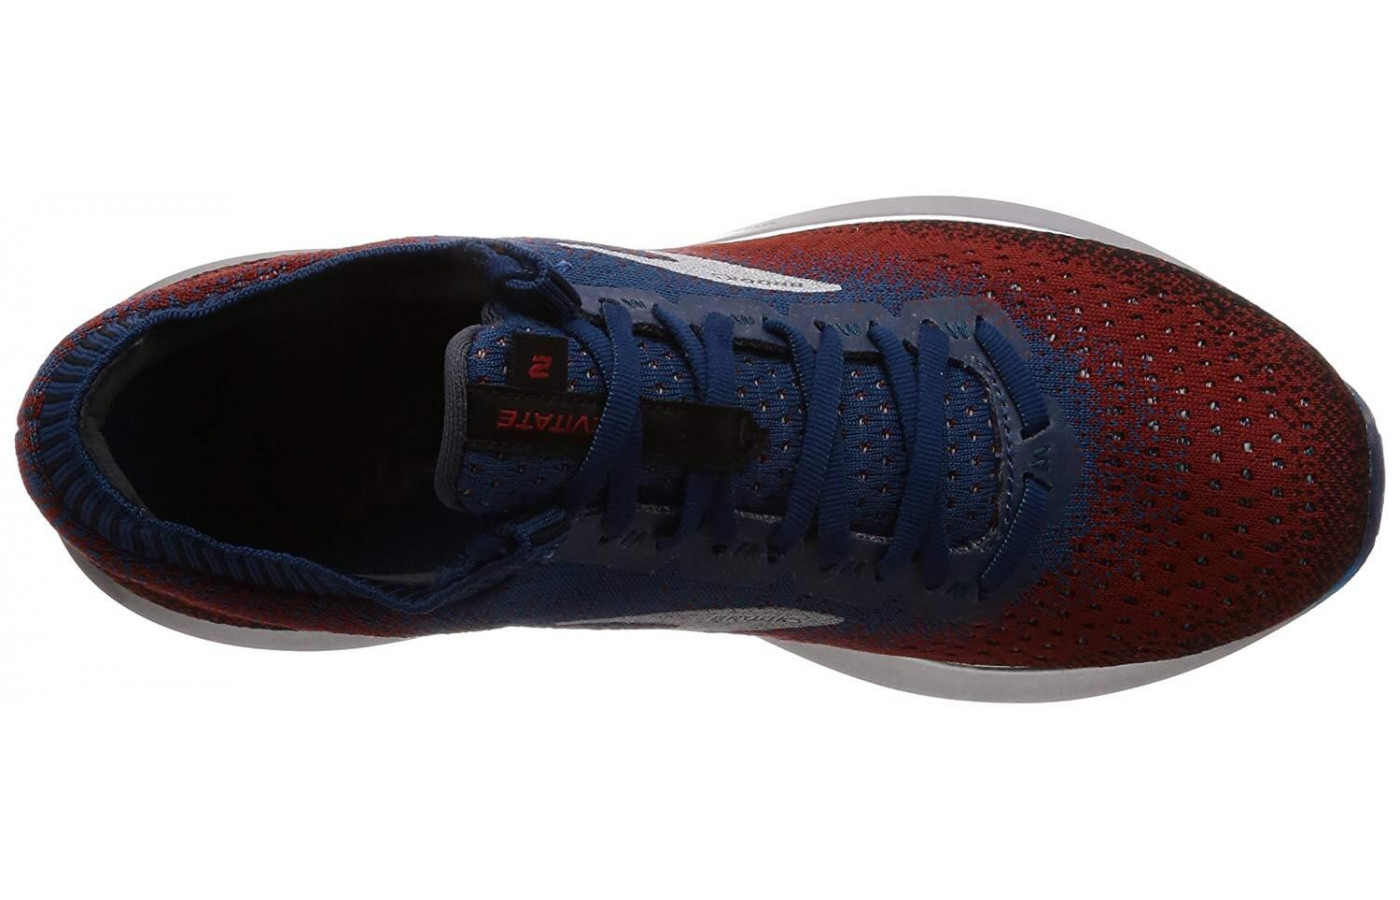 Brooks Levitate 2 top